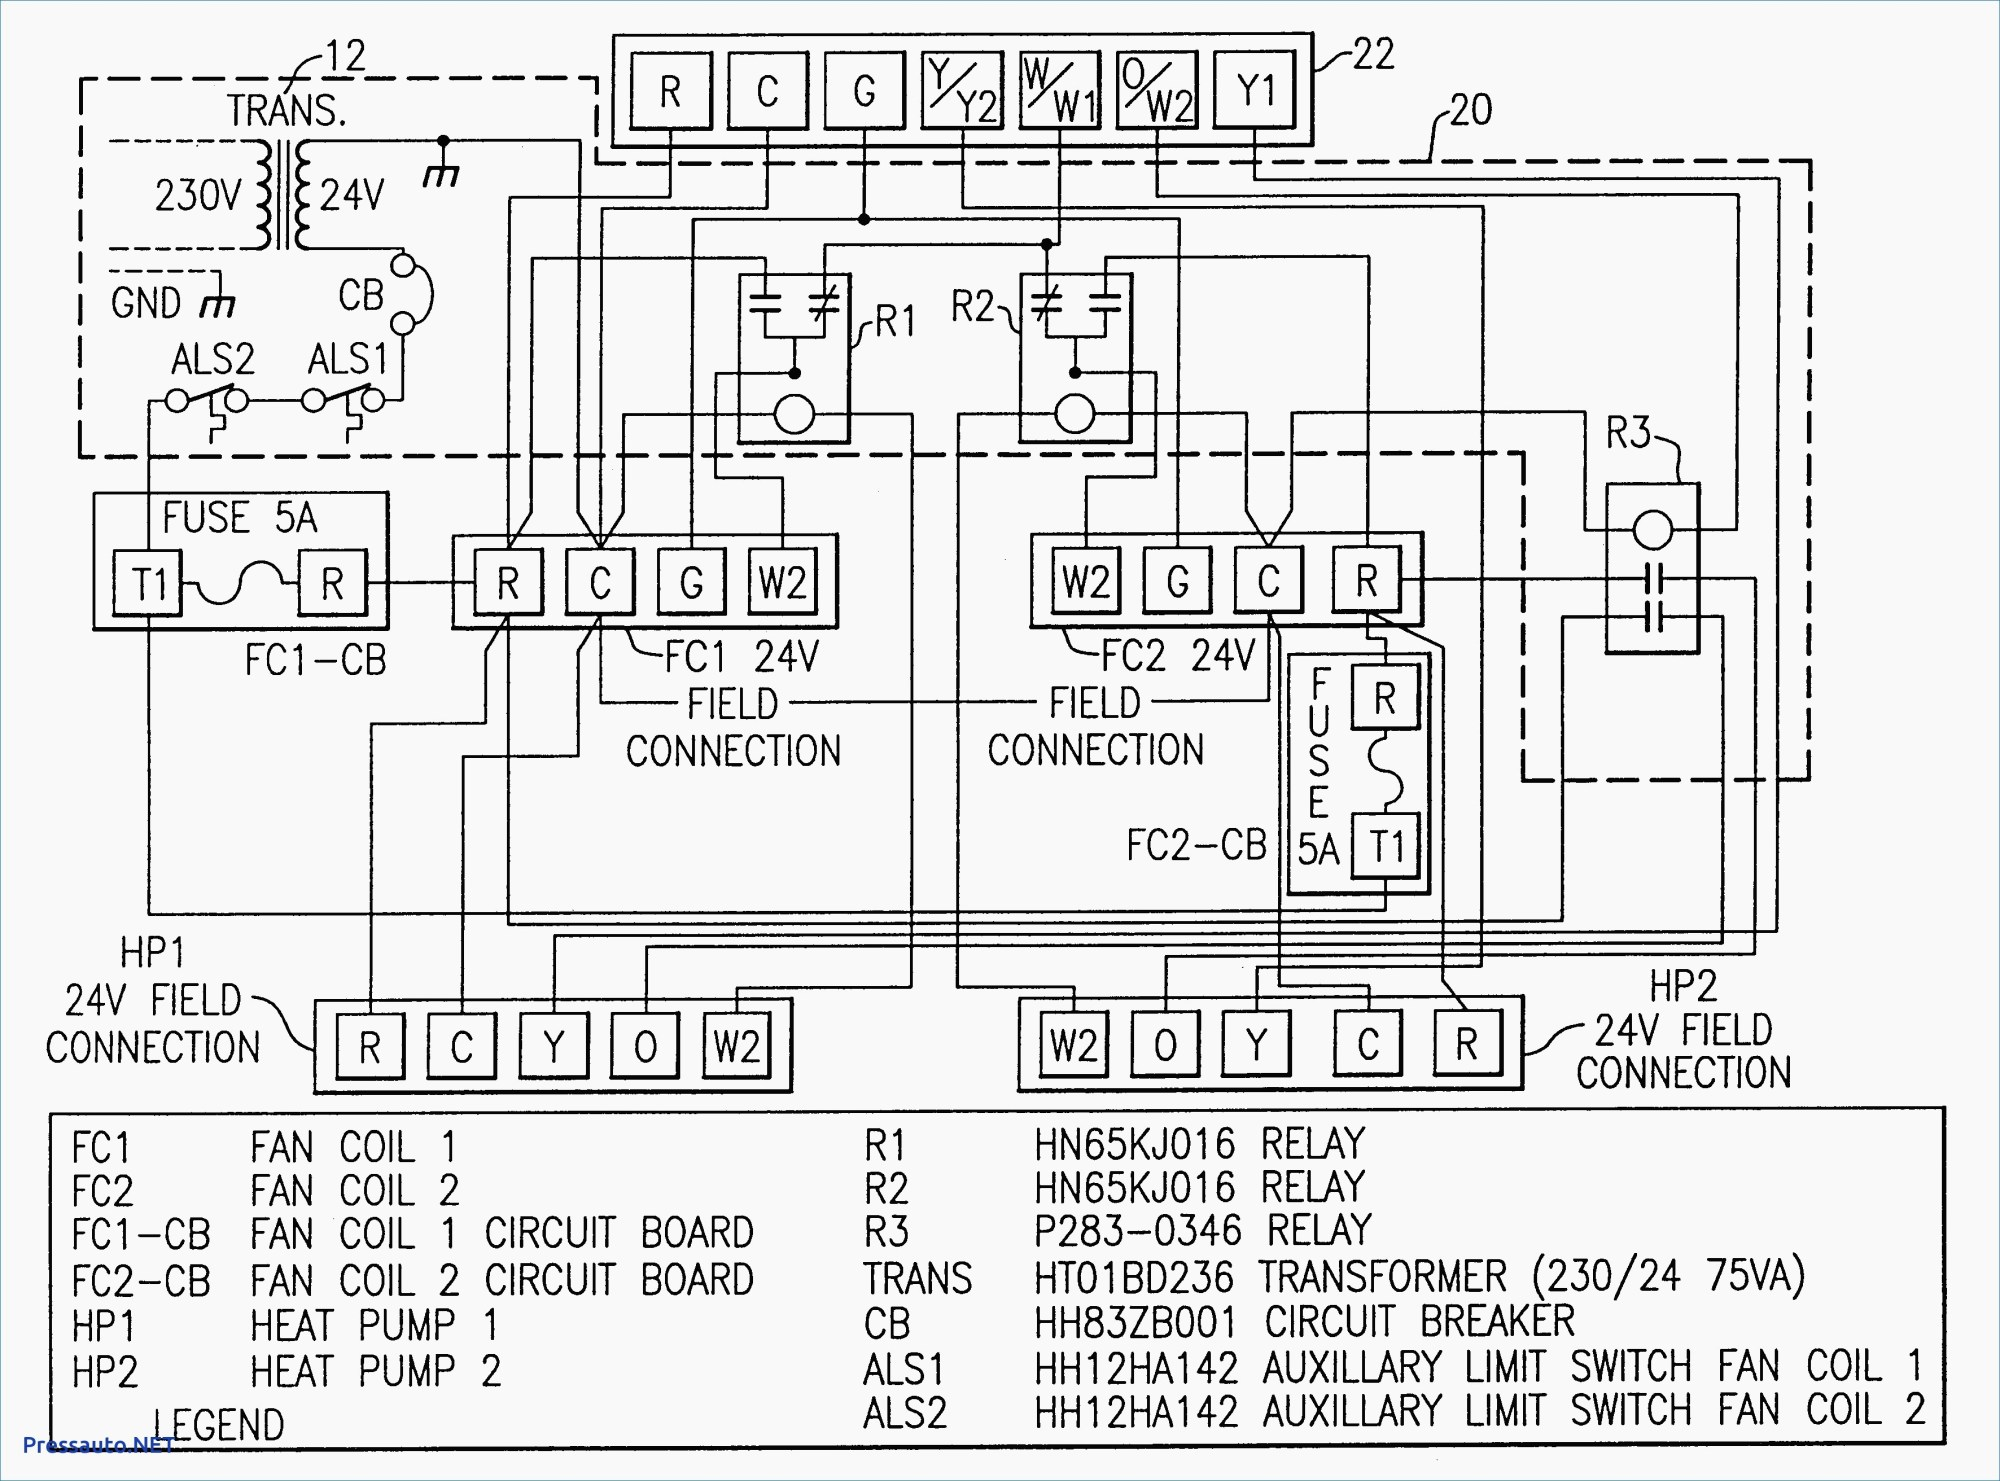 hight resolution of wrg 1641 480 240 120 transformer wiring diagram 480 240 120 transformer wiring diagram